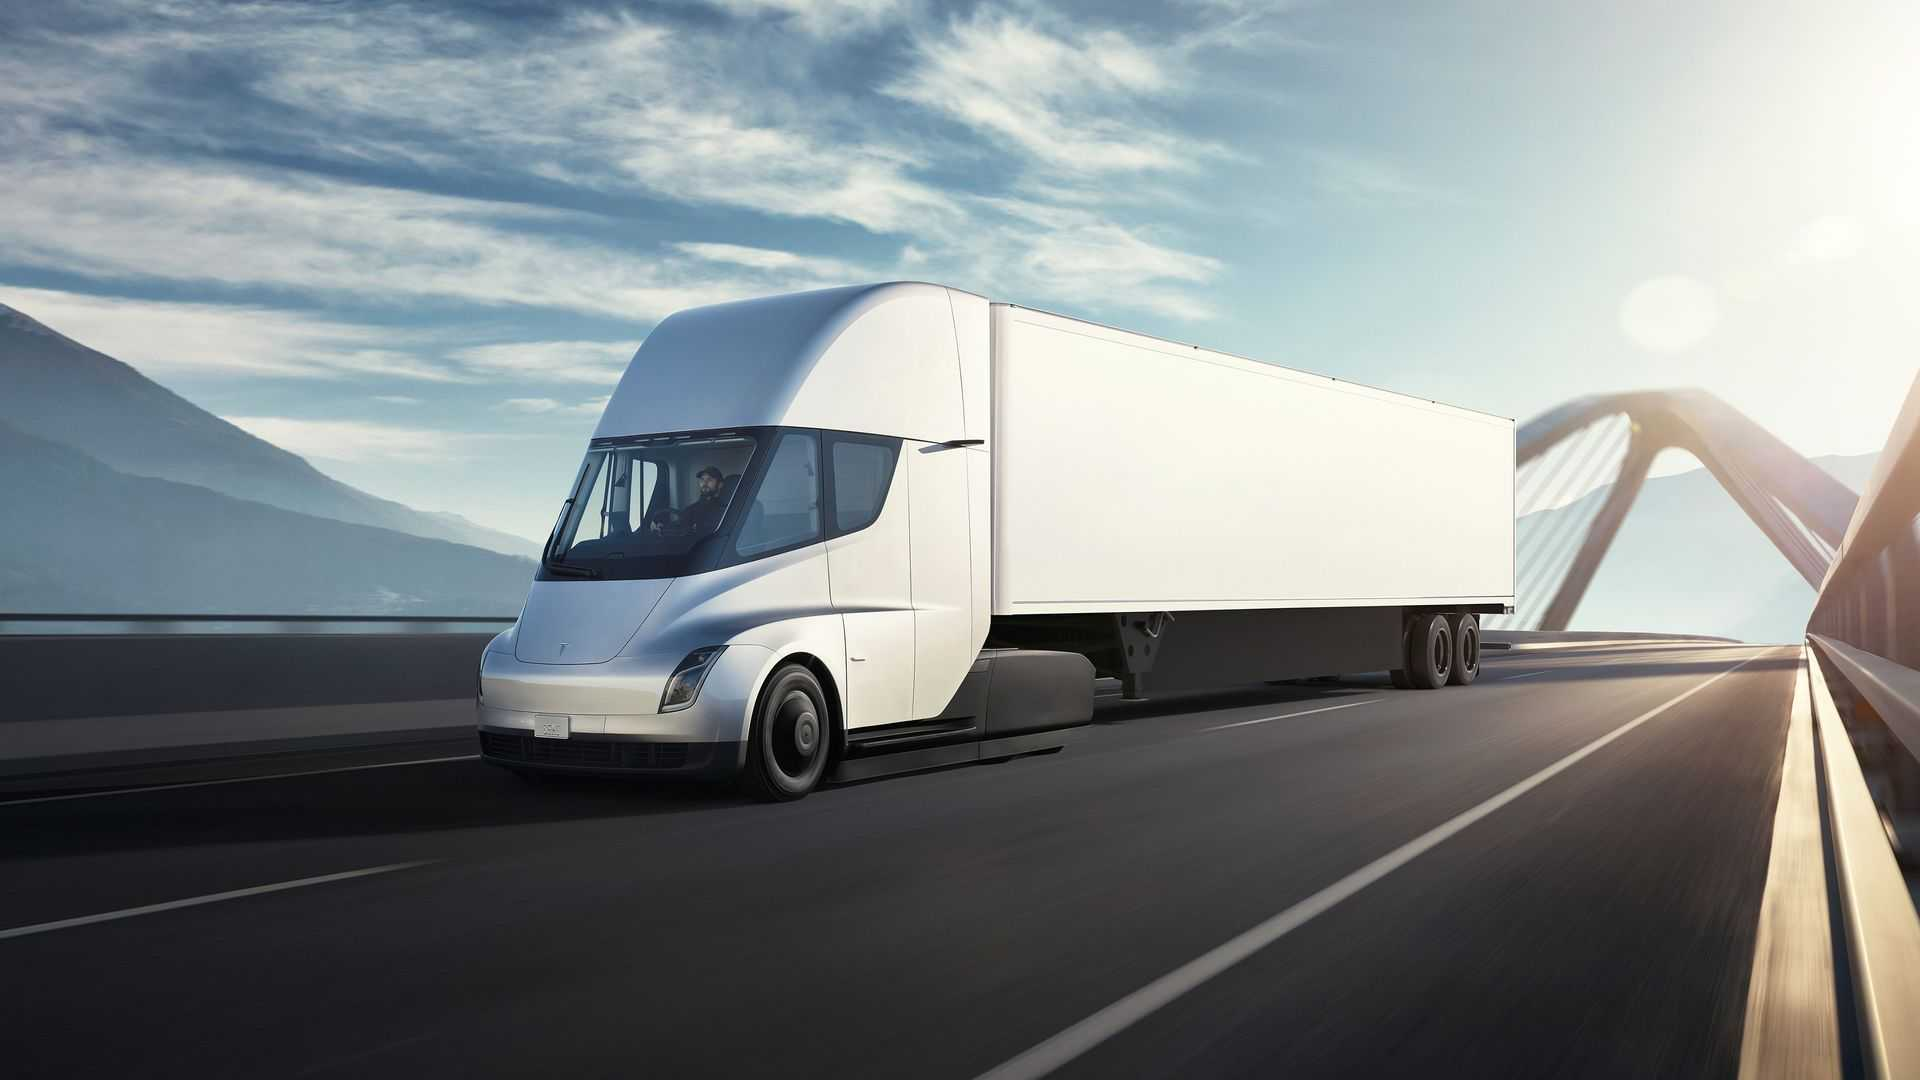 wp4859419-tesla-semi-electric-truck-road-wallpapers.jpg